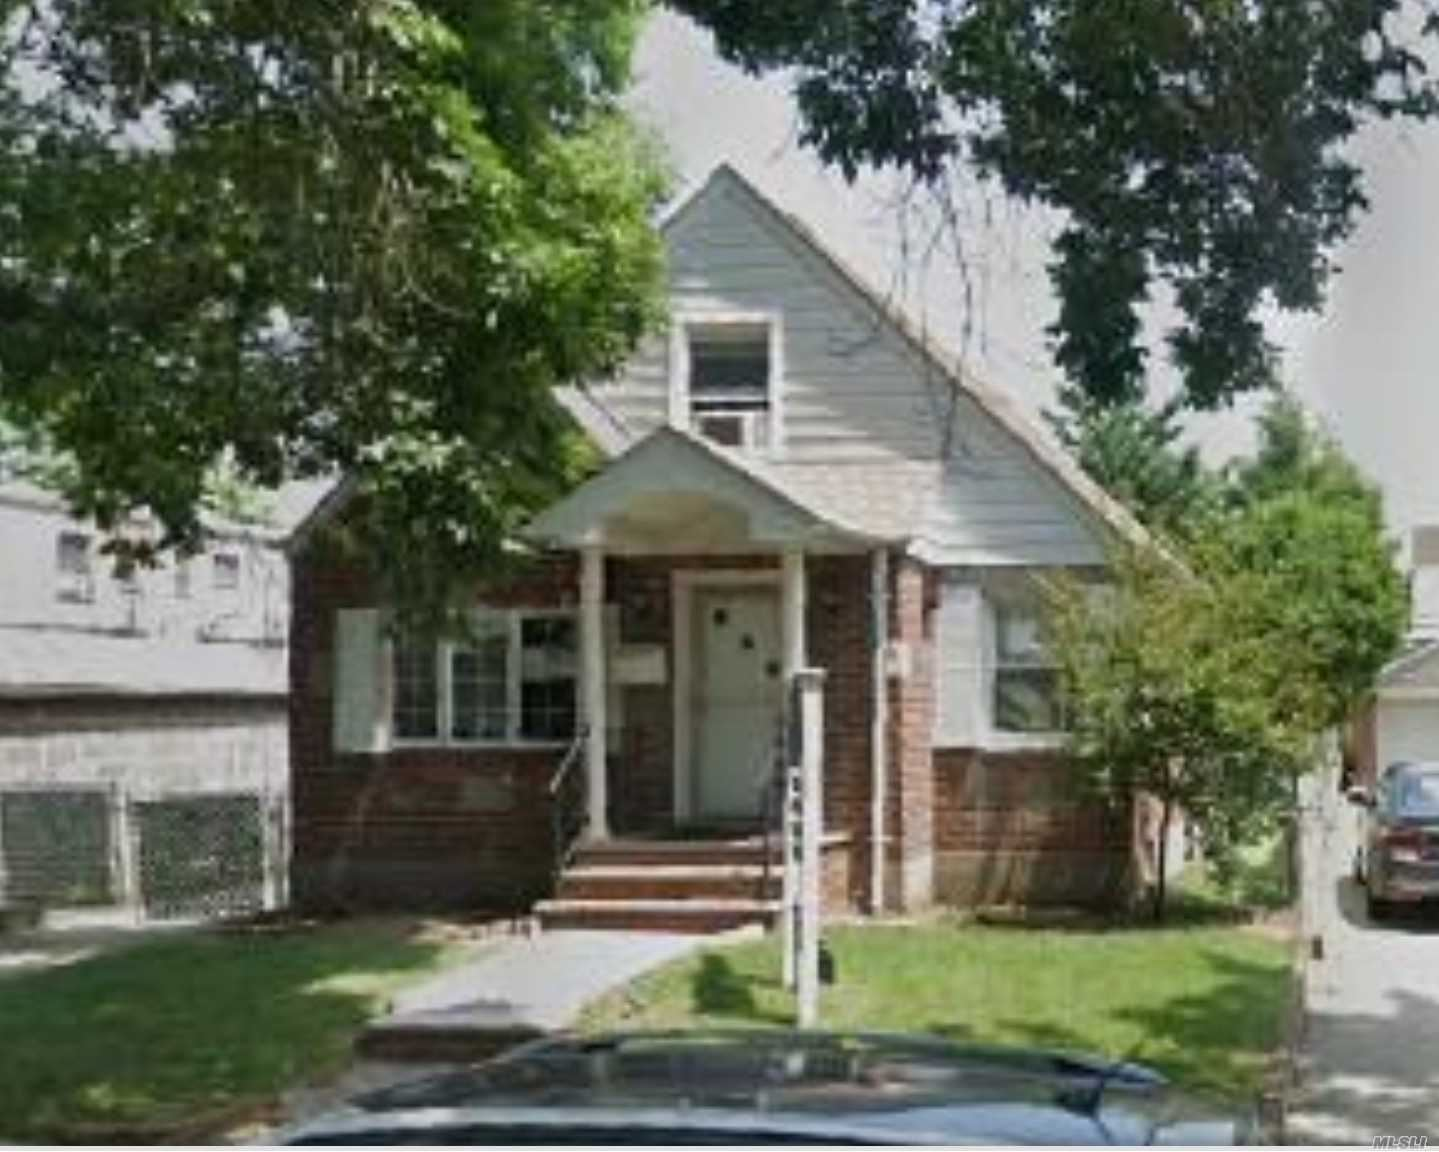 84-11 256th St, Floral Park, NY 11001 - MLS#: 3204576